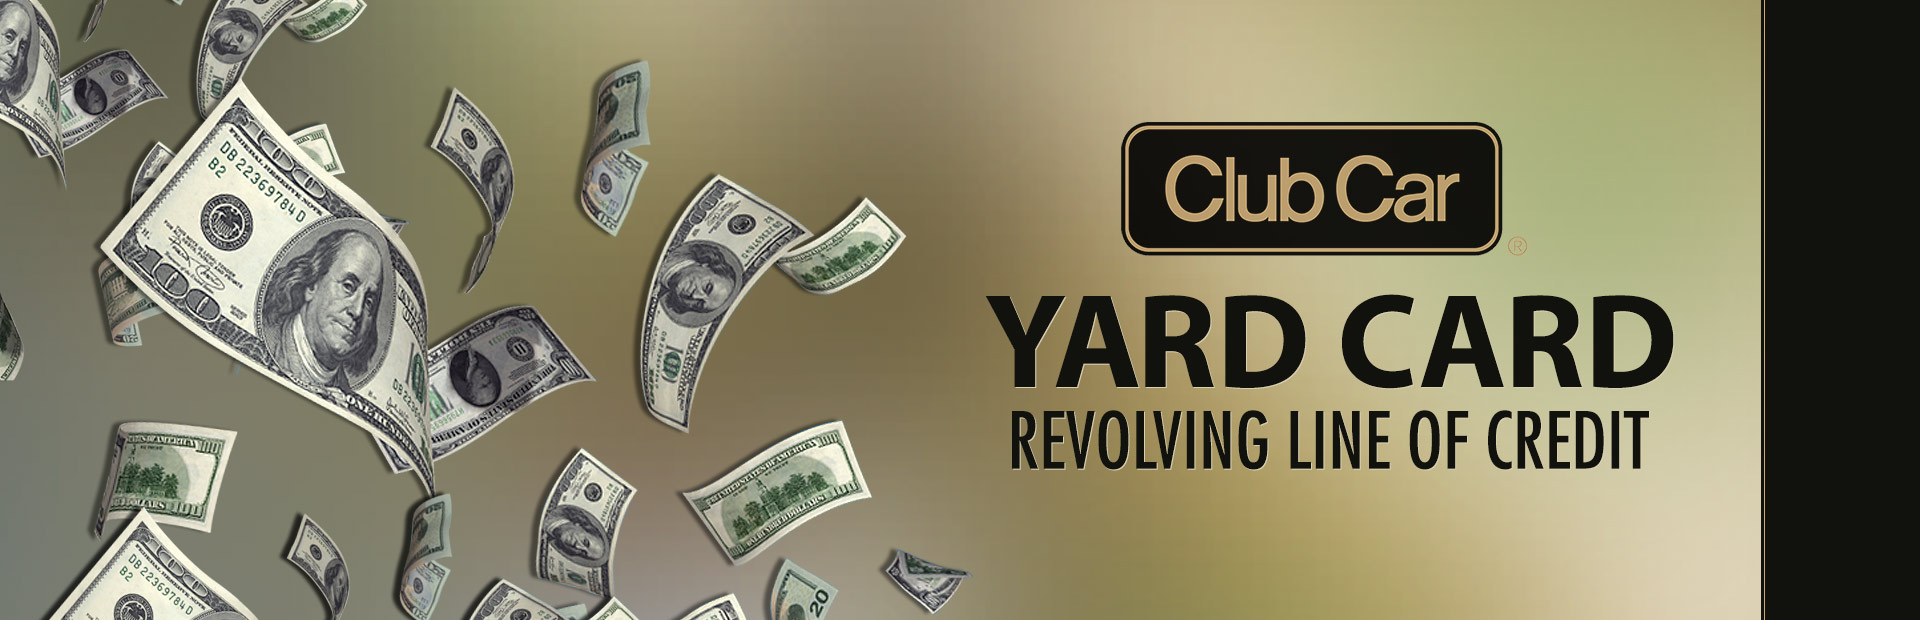 Club Car: Yard Card Revolving Line of Credit